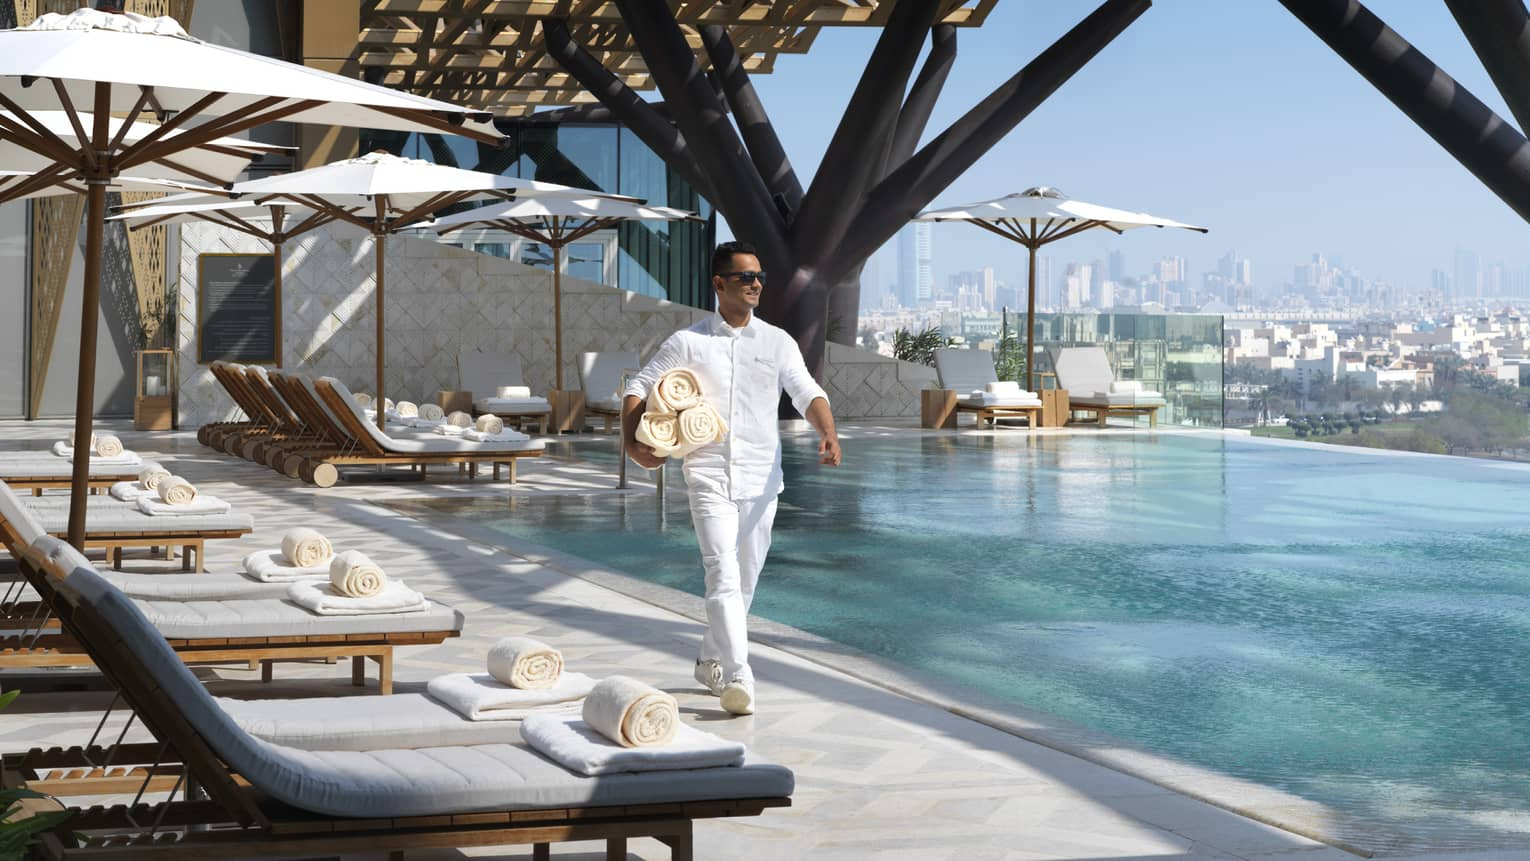 Hotel staff walks past white lounge chairs on outdoor swimming pool deck, carries rolled towels